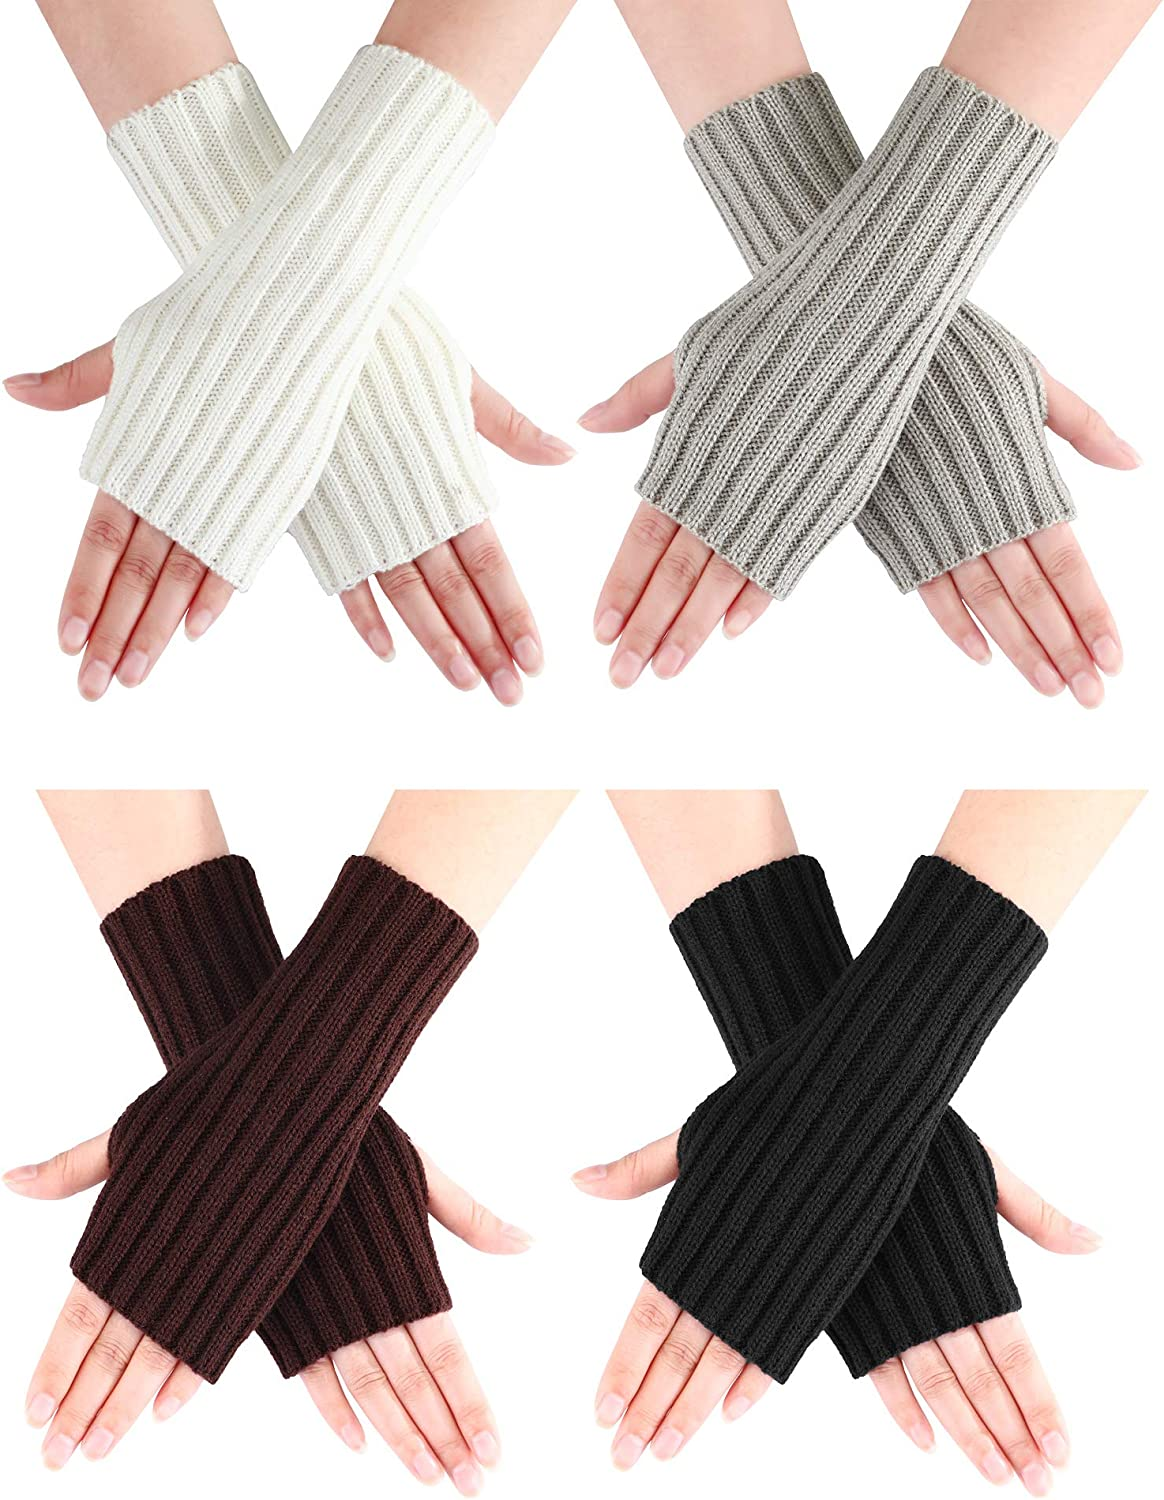 Bememo 4 Pairs Women Long Fingerless Gloves Winter Mitten Arm Gloves with Thumb Hole